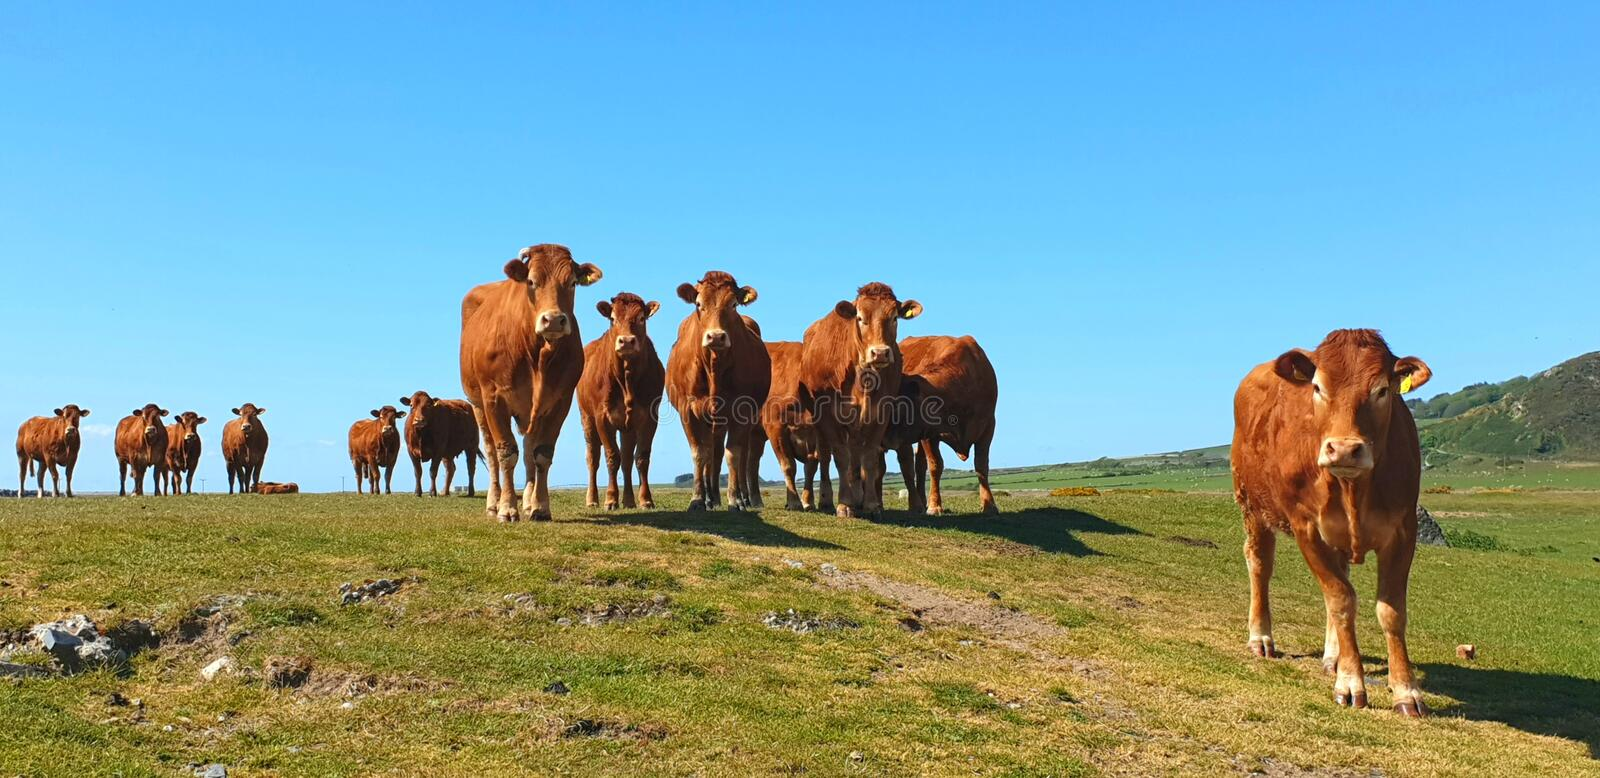 Herd of Red Limousin cattle female cow cows livestock stock image